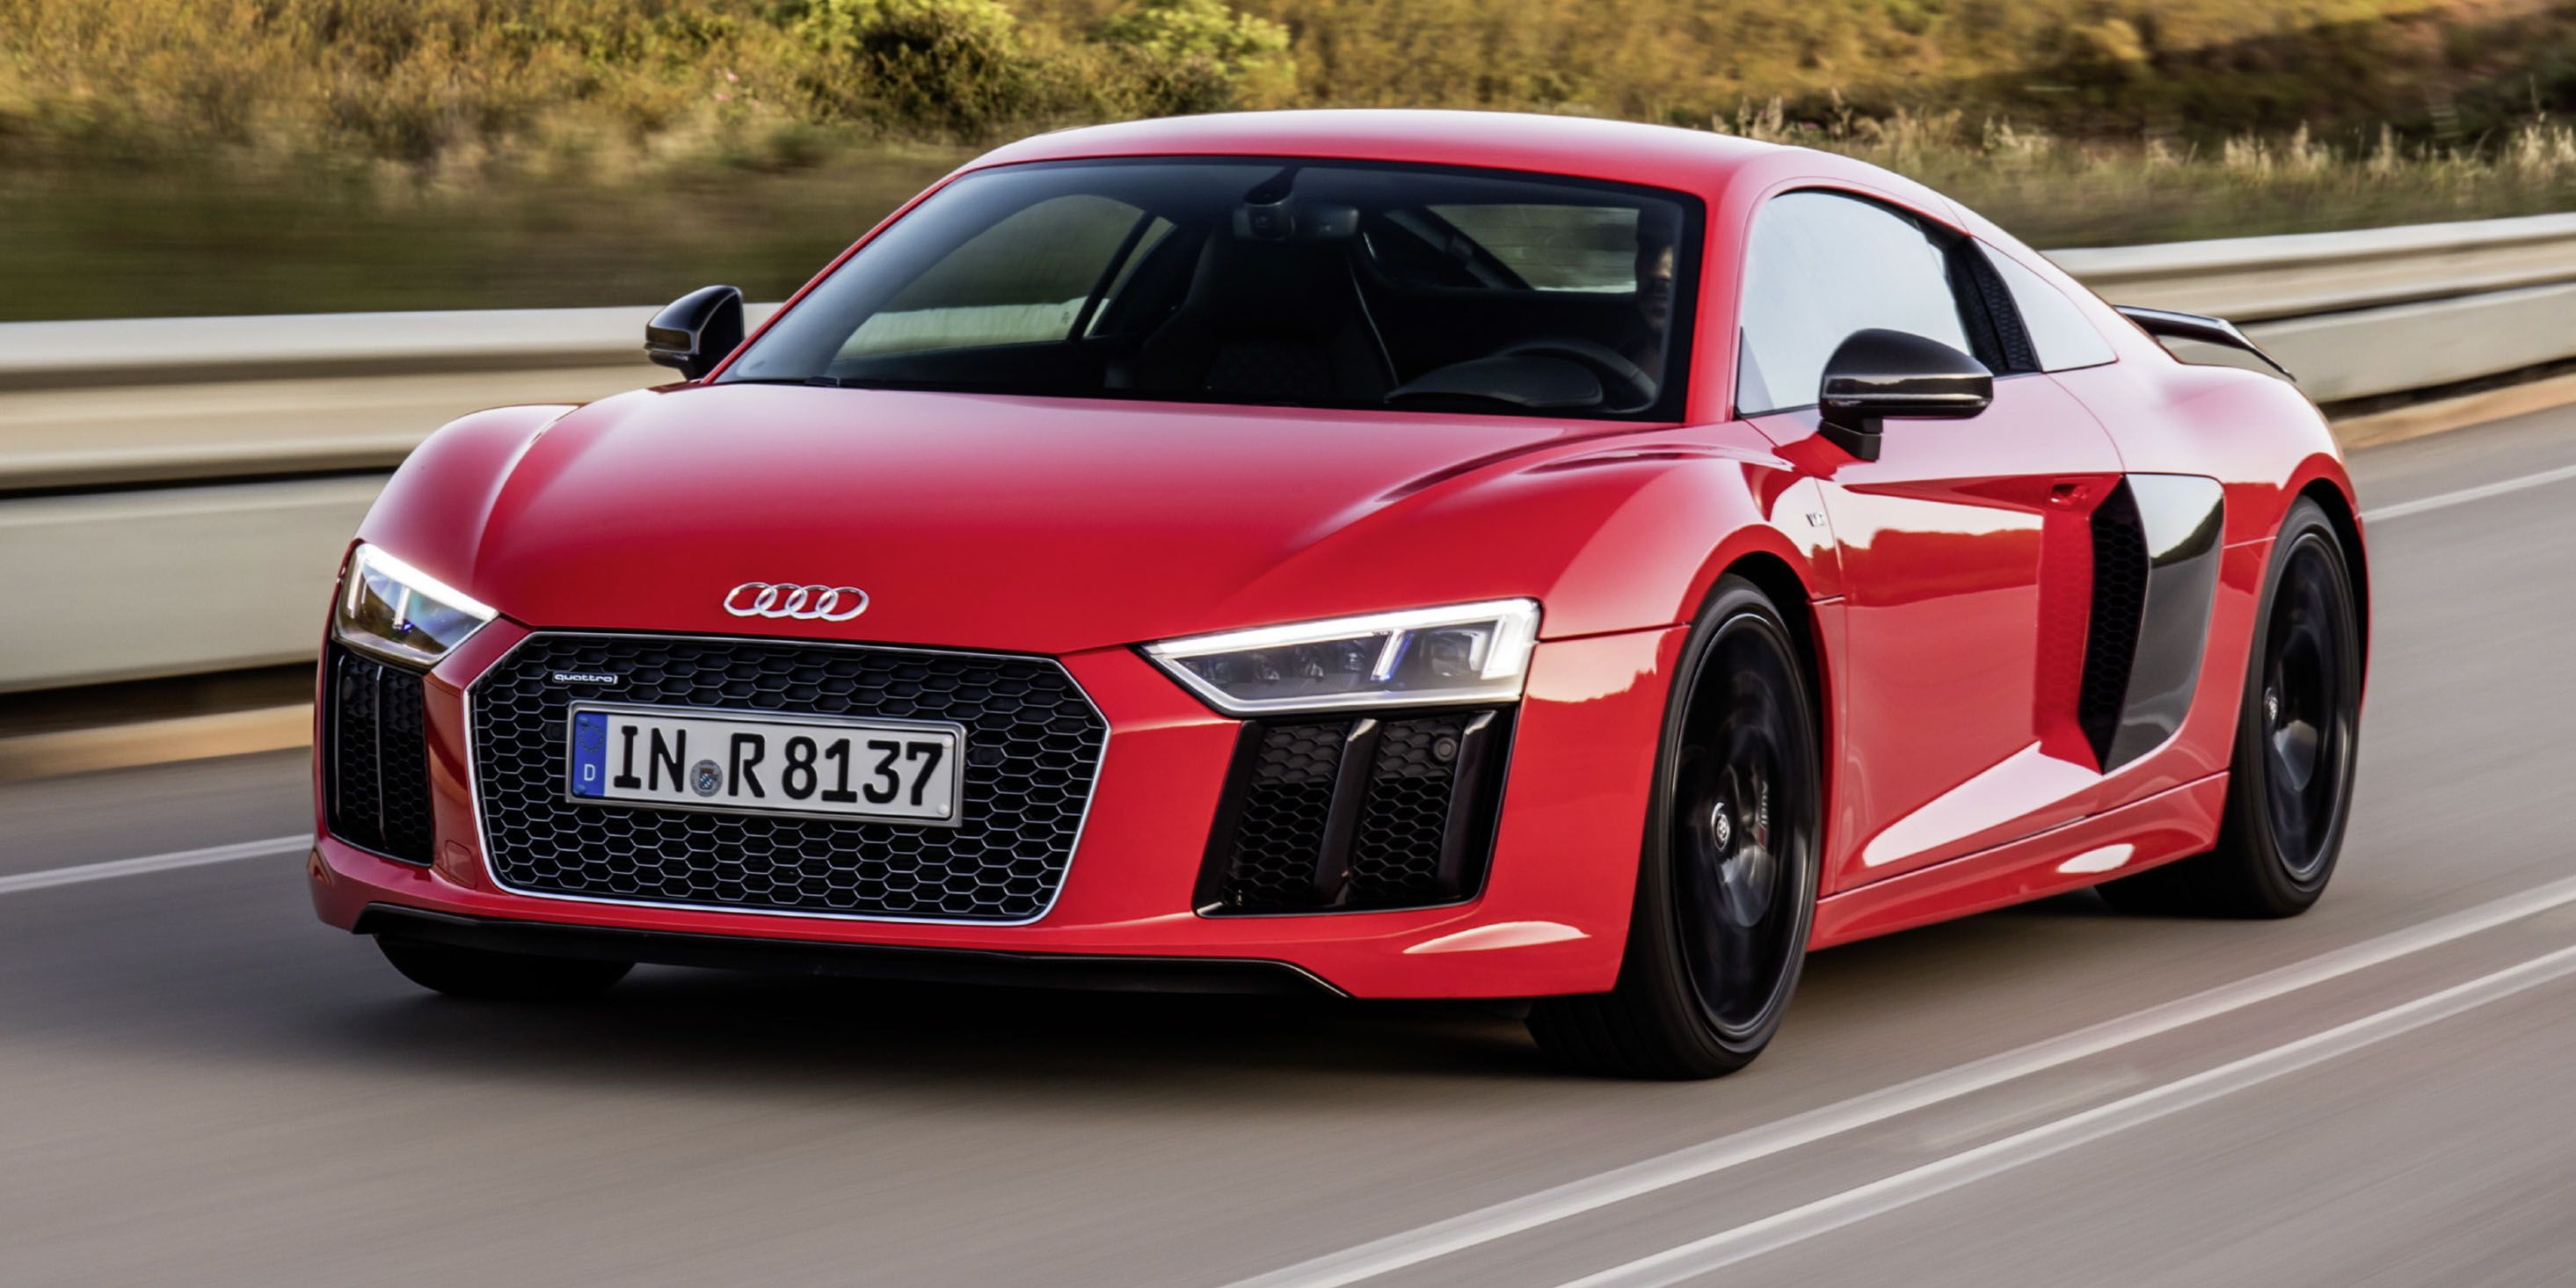 2016 Audi R8 V10 and V10 Plus First Drive Review